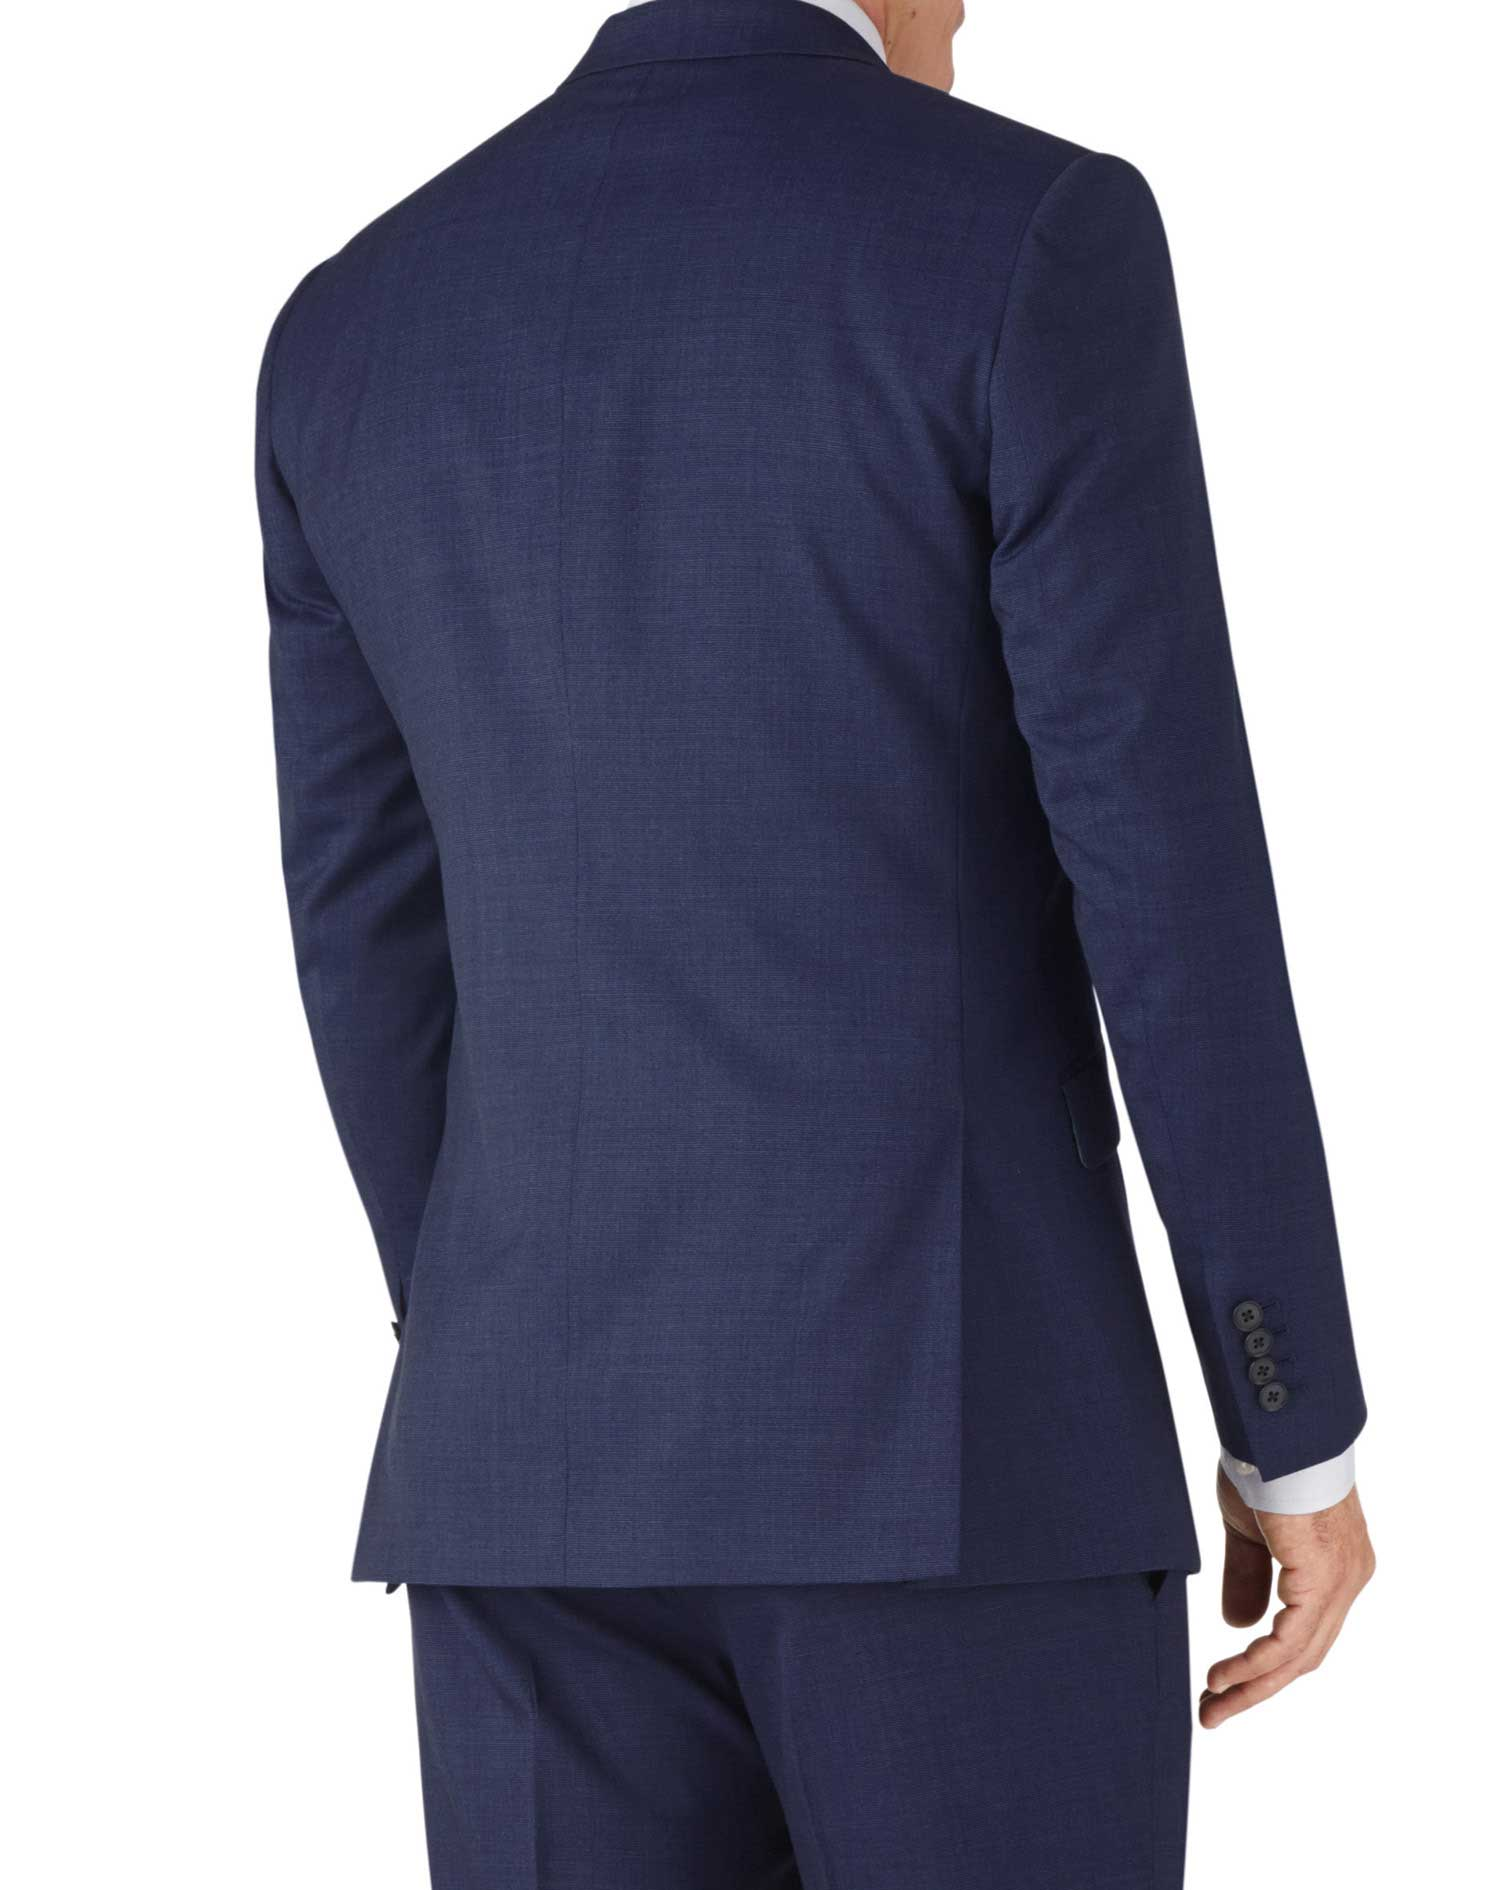 Indigo slim fit end-on-end business suit jacket